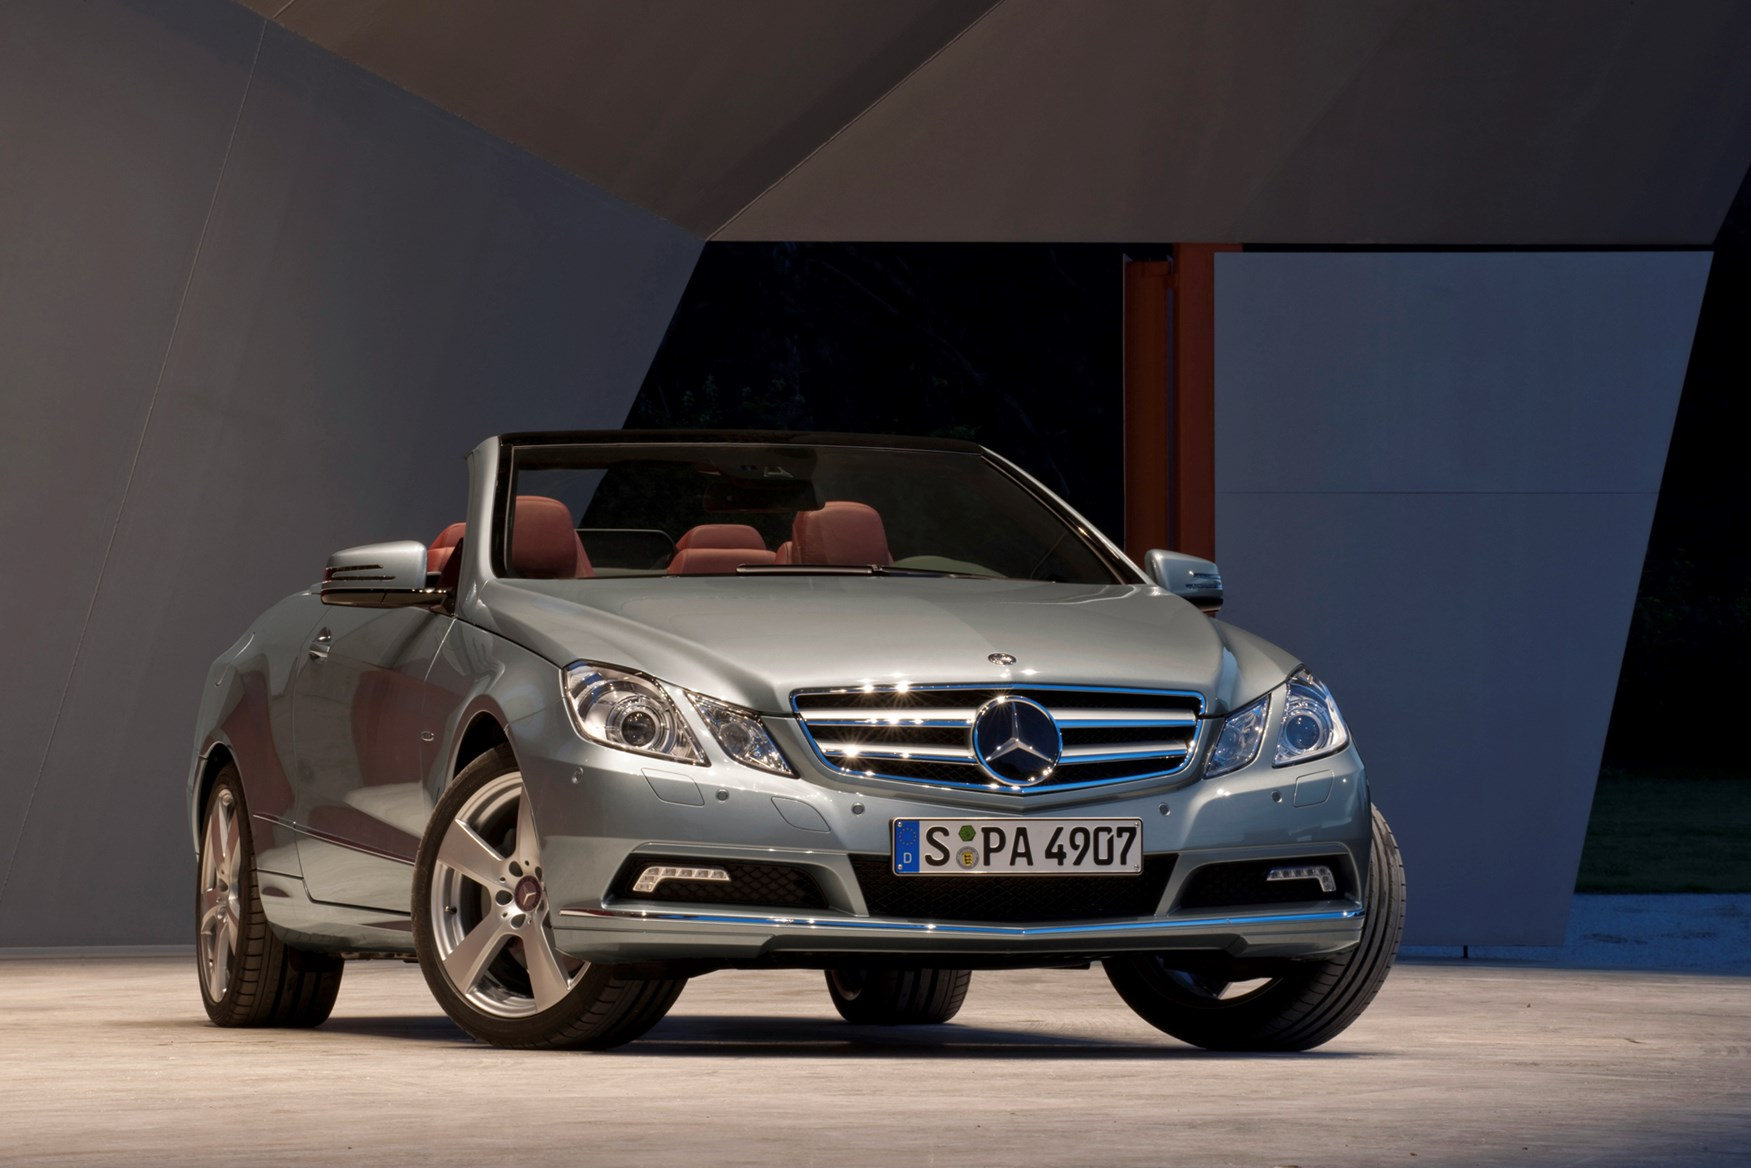 cabriolet white three magazine fantasy ultimate automobile convertible front benz mercedes news quarters heat